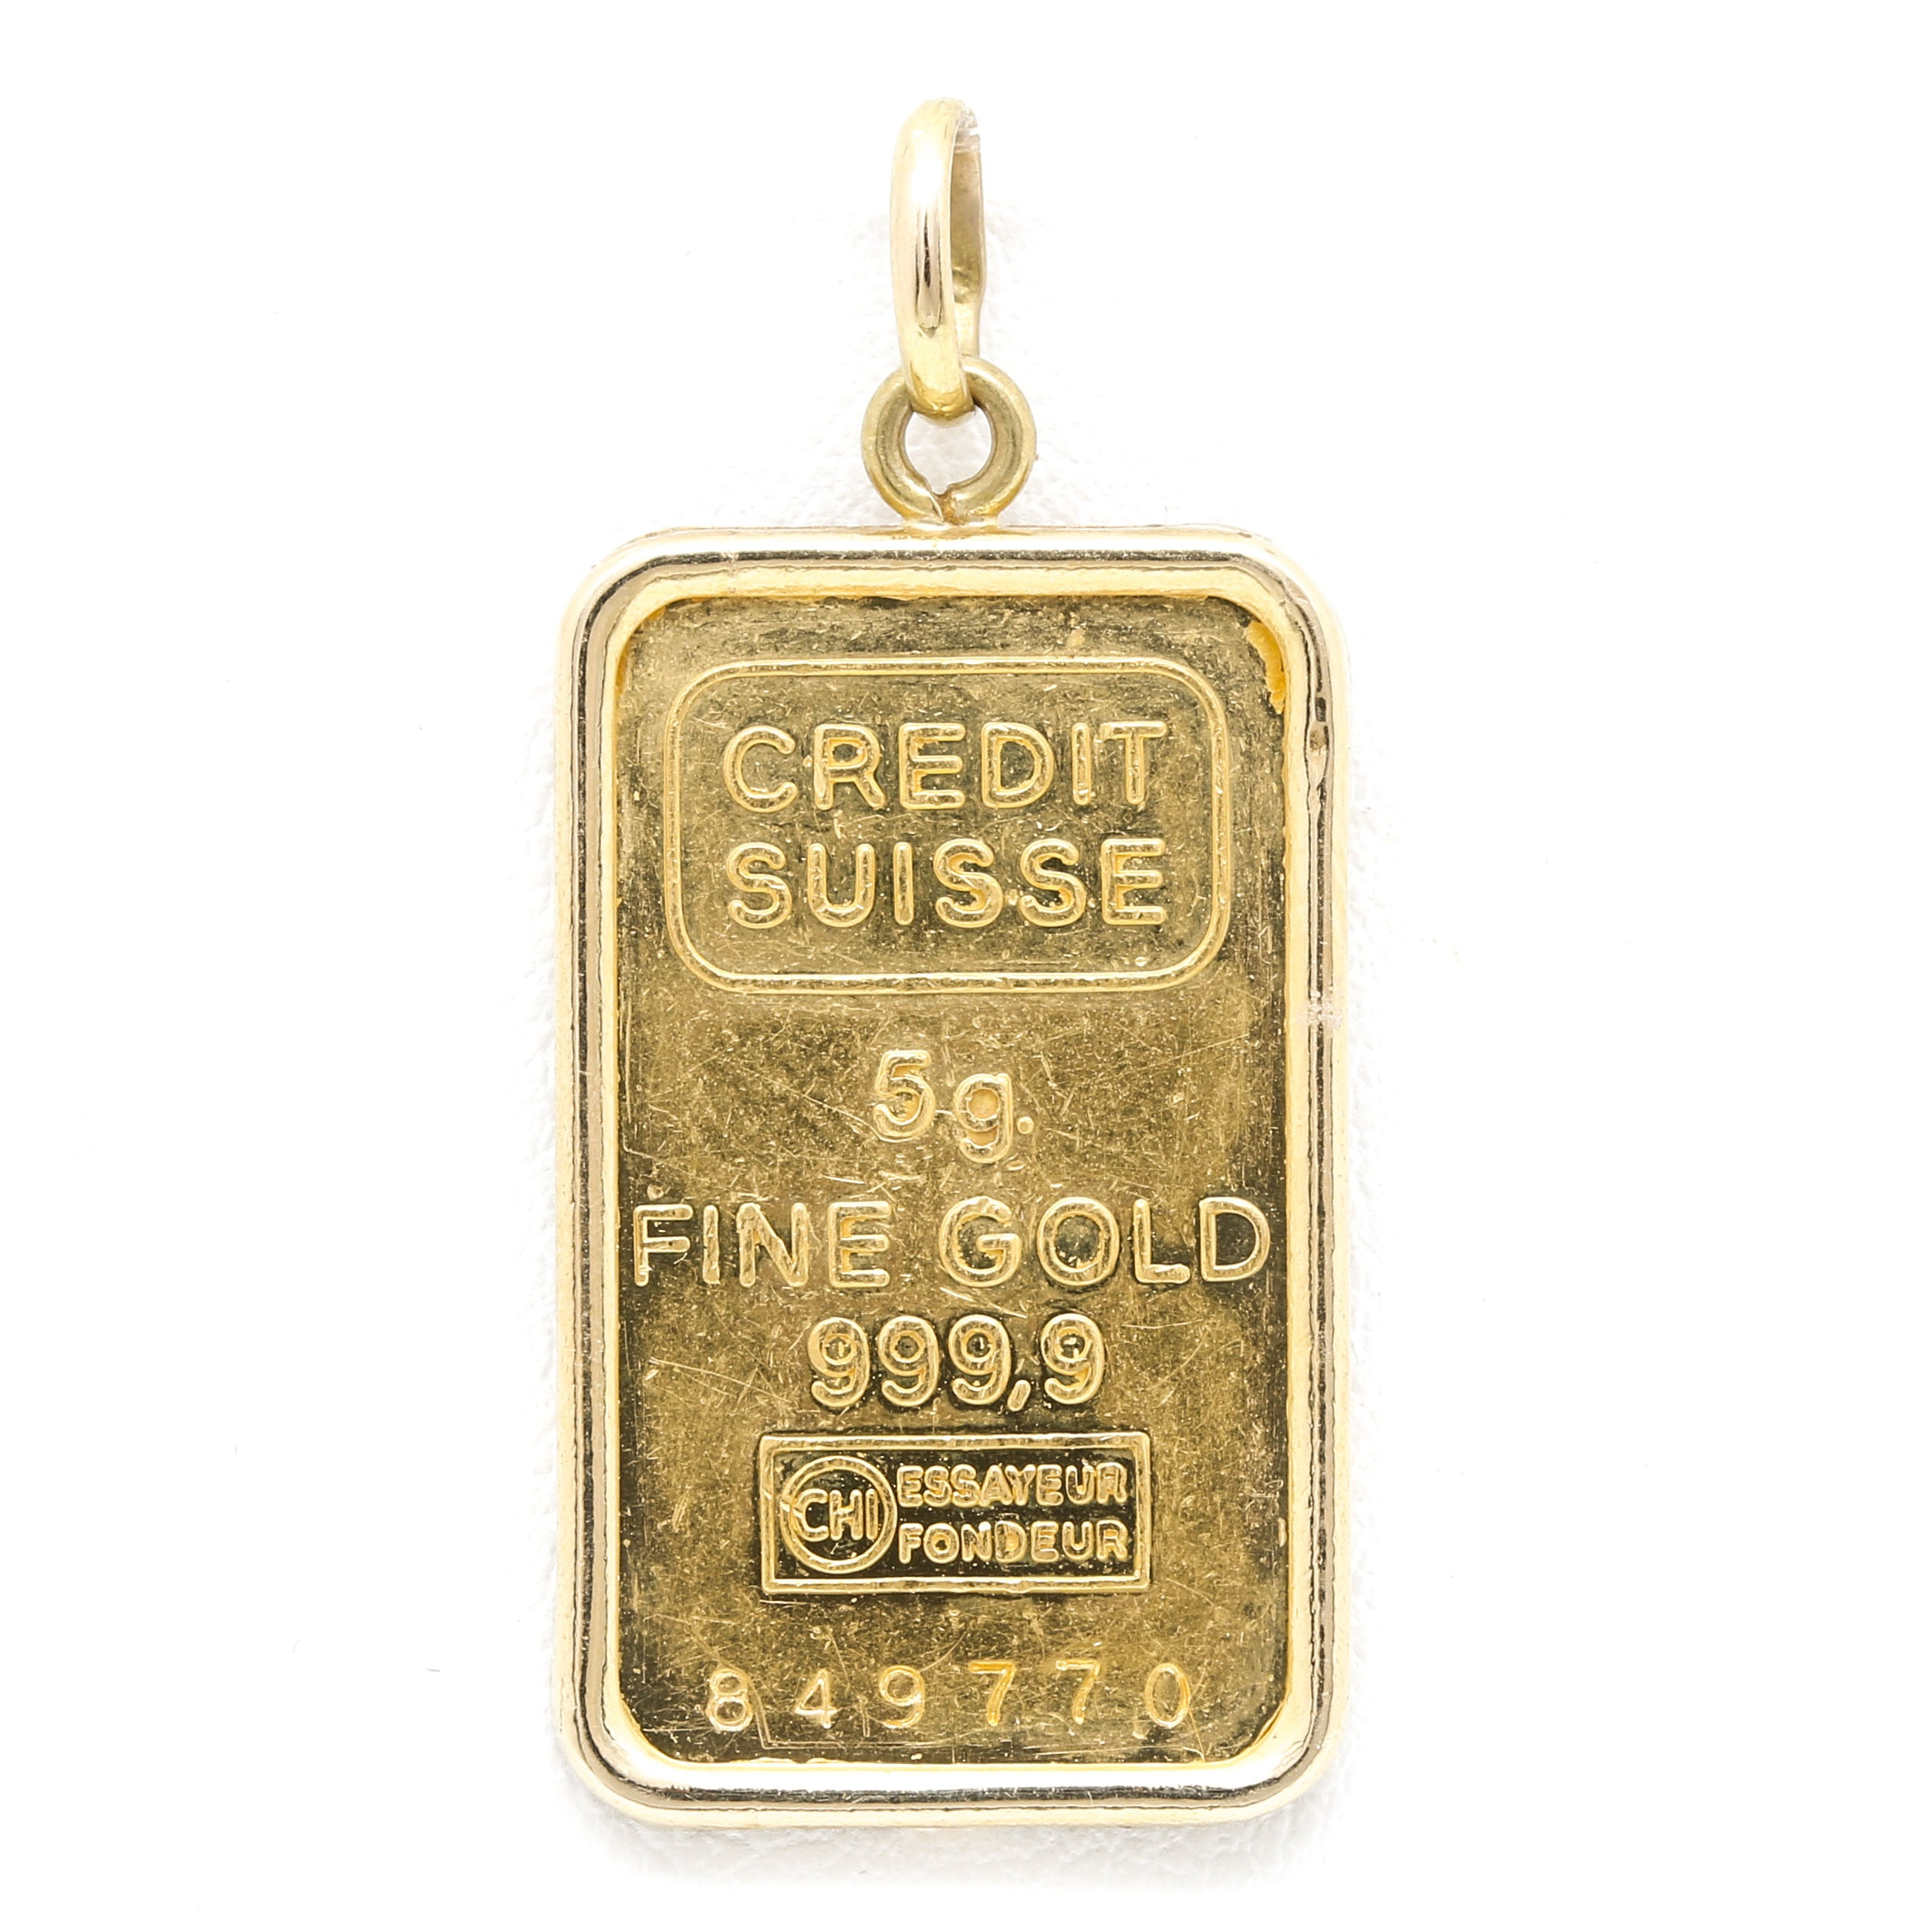 18K Yellow Gold Pendant With Credit Suisse 5 Gram Fine Gold Ingot